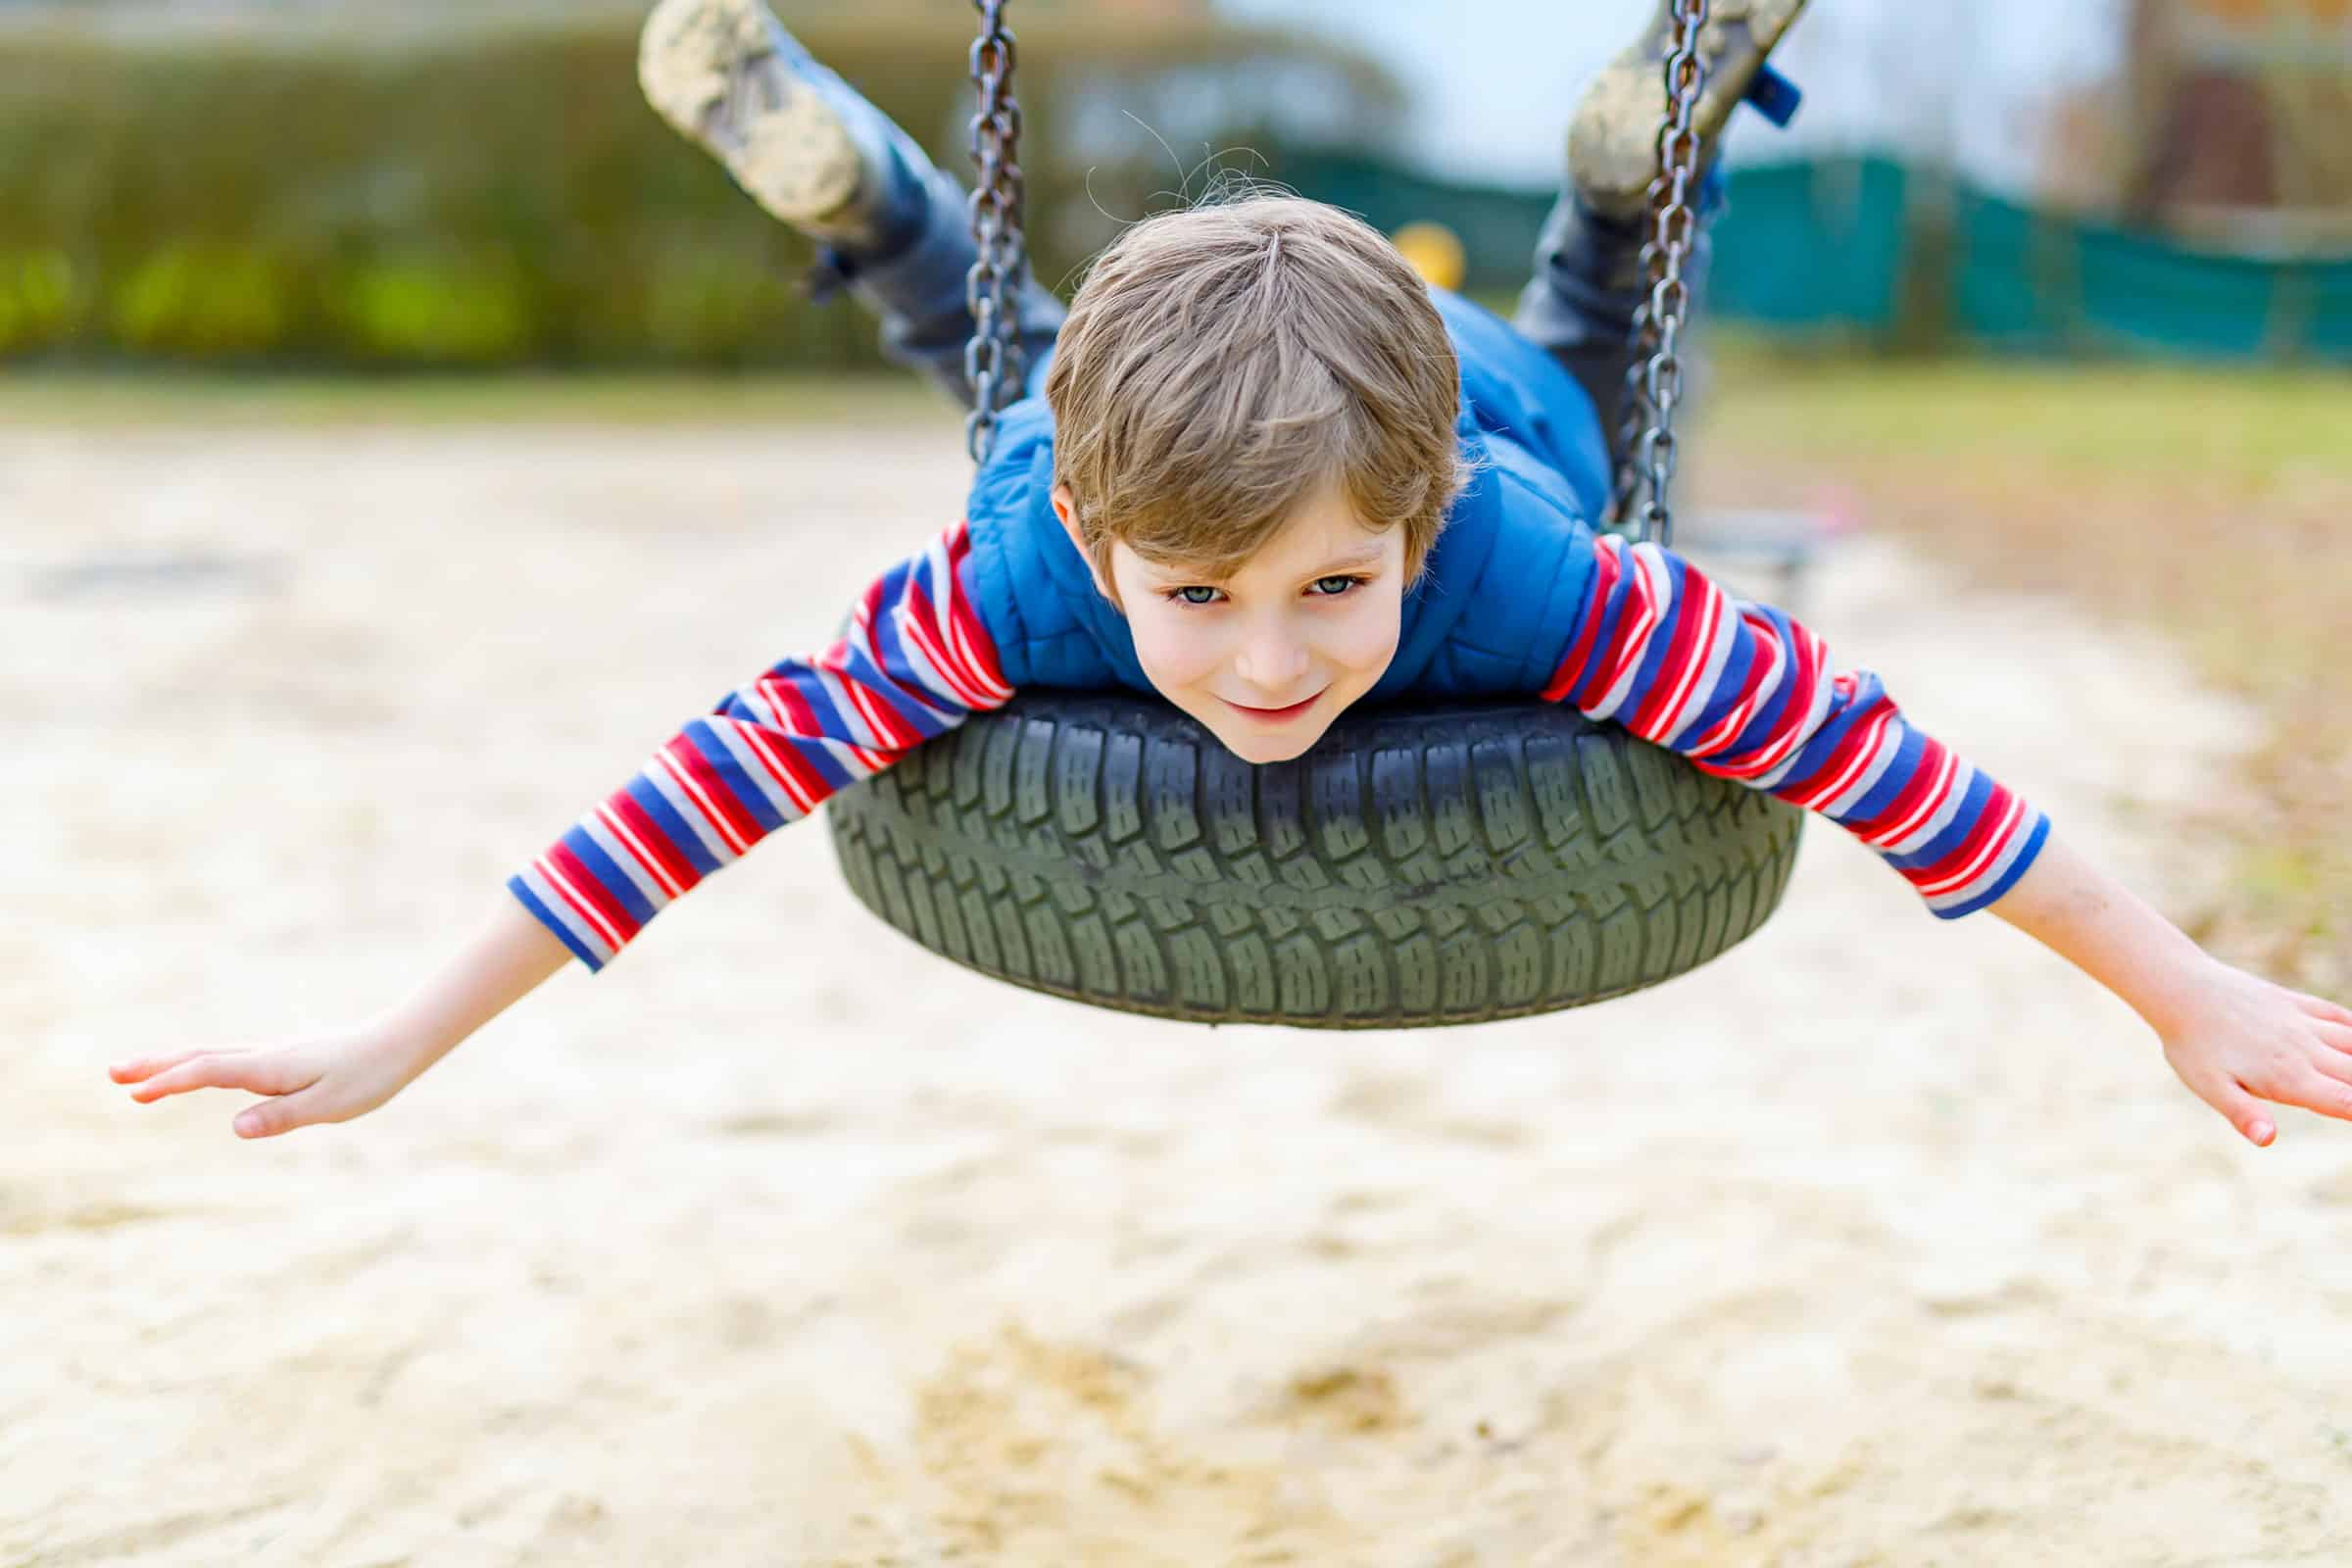 Child on belly on tire swing on playground